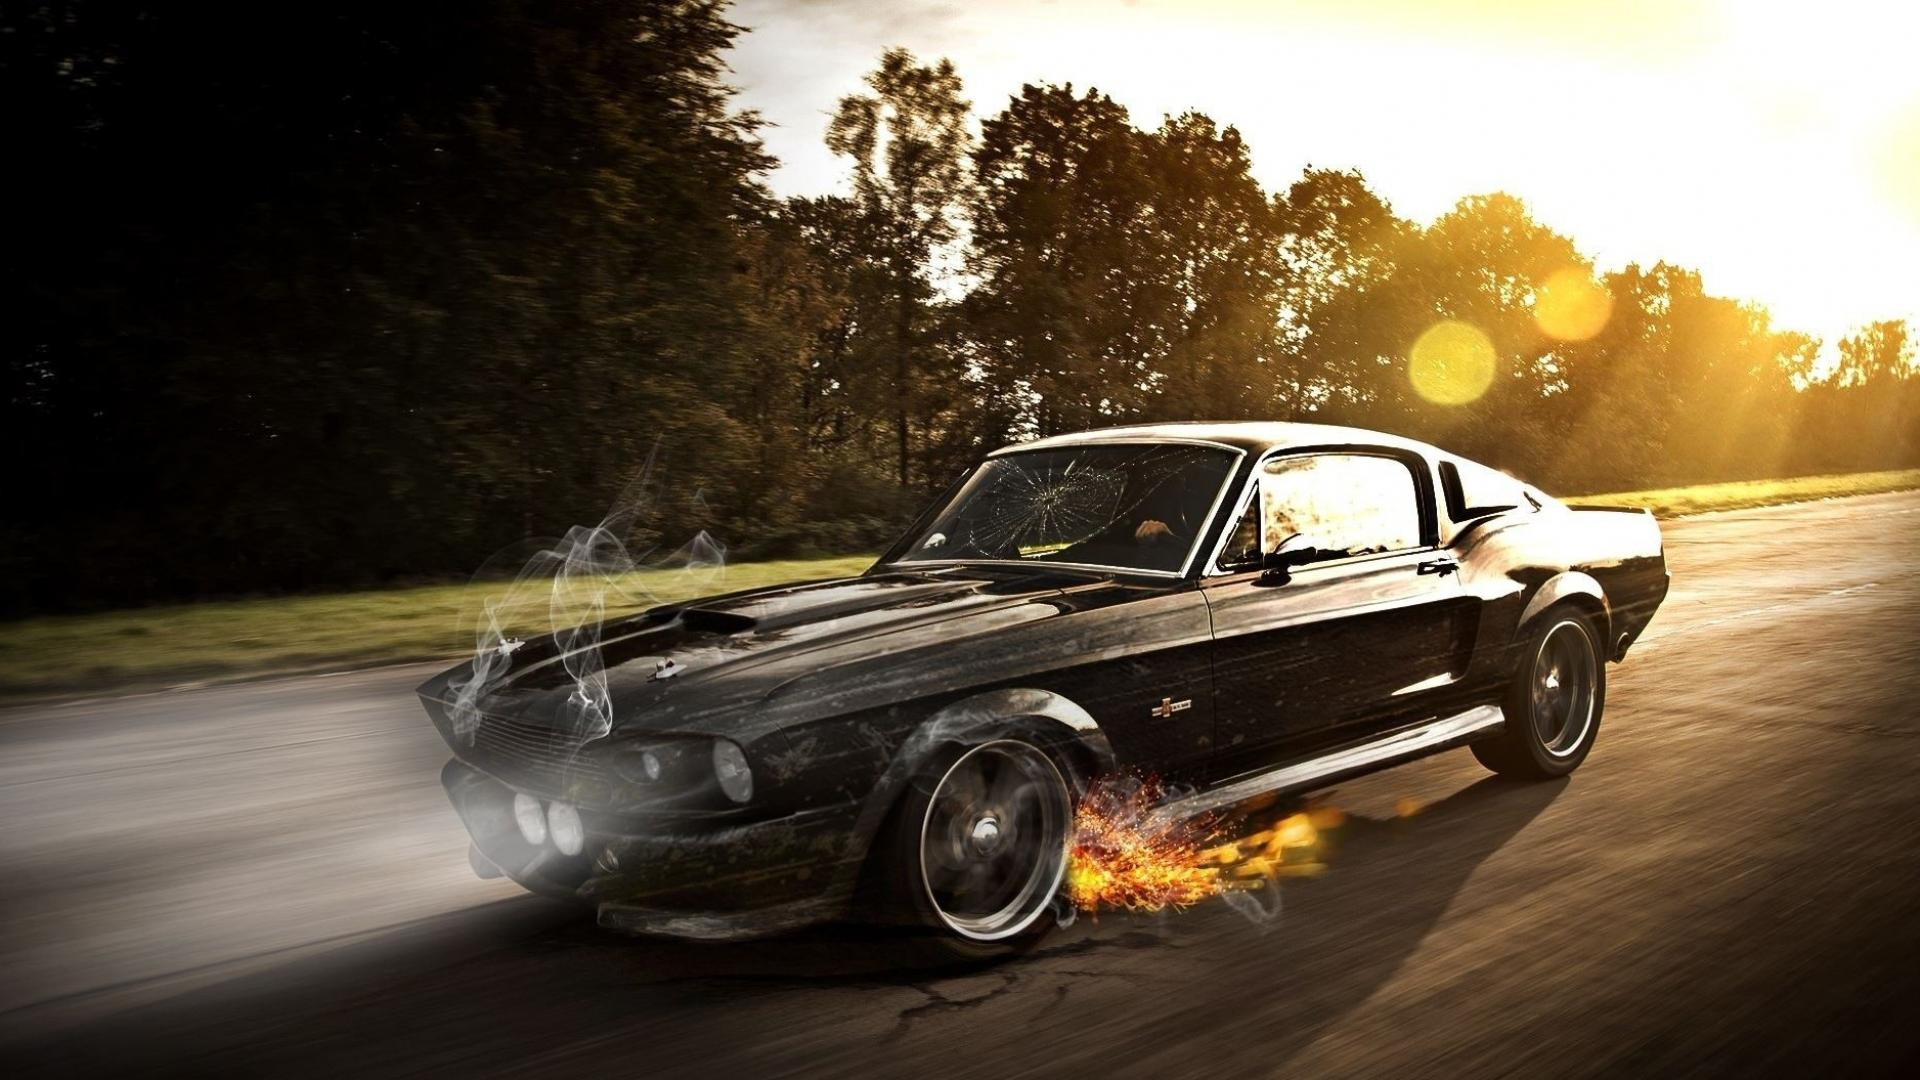 Cars ford mustang muscle car wallpaper 59043 1920x1080